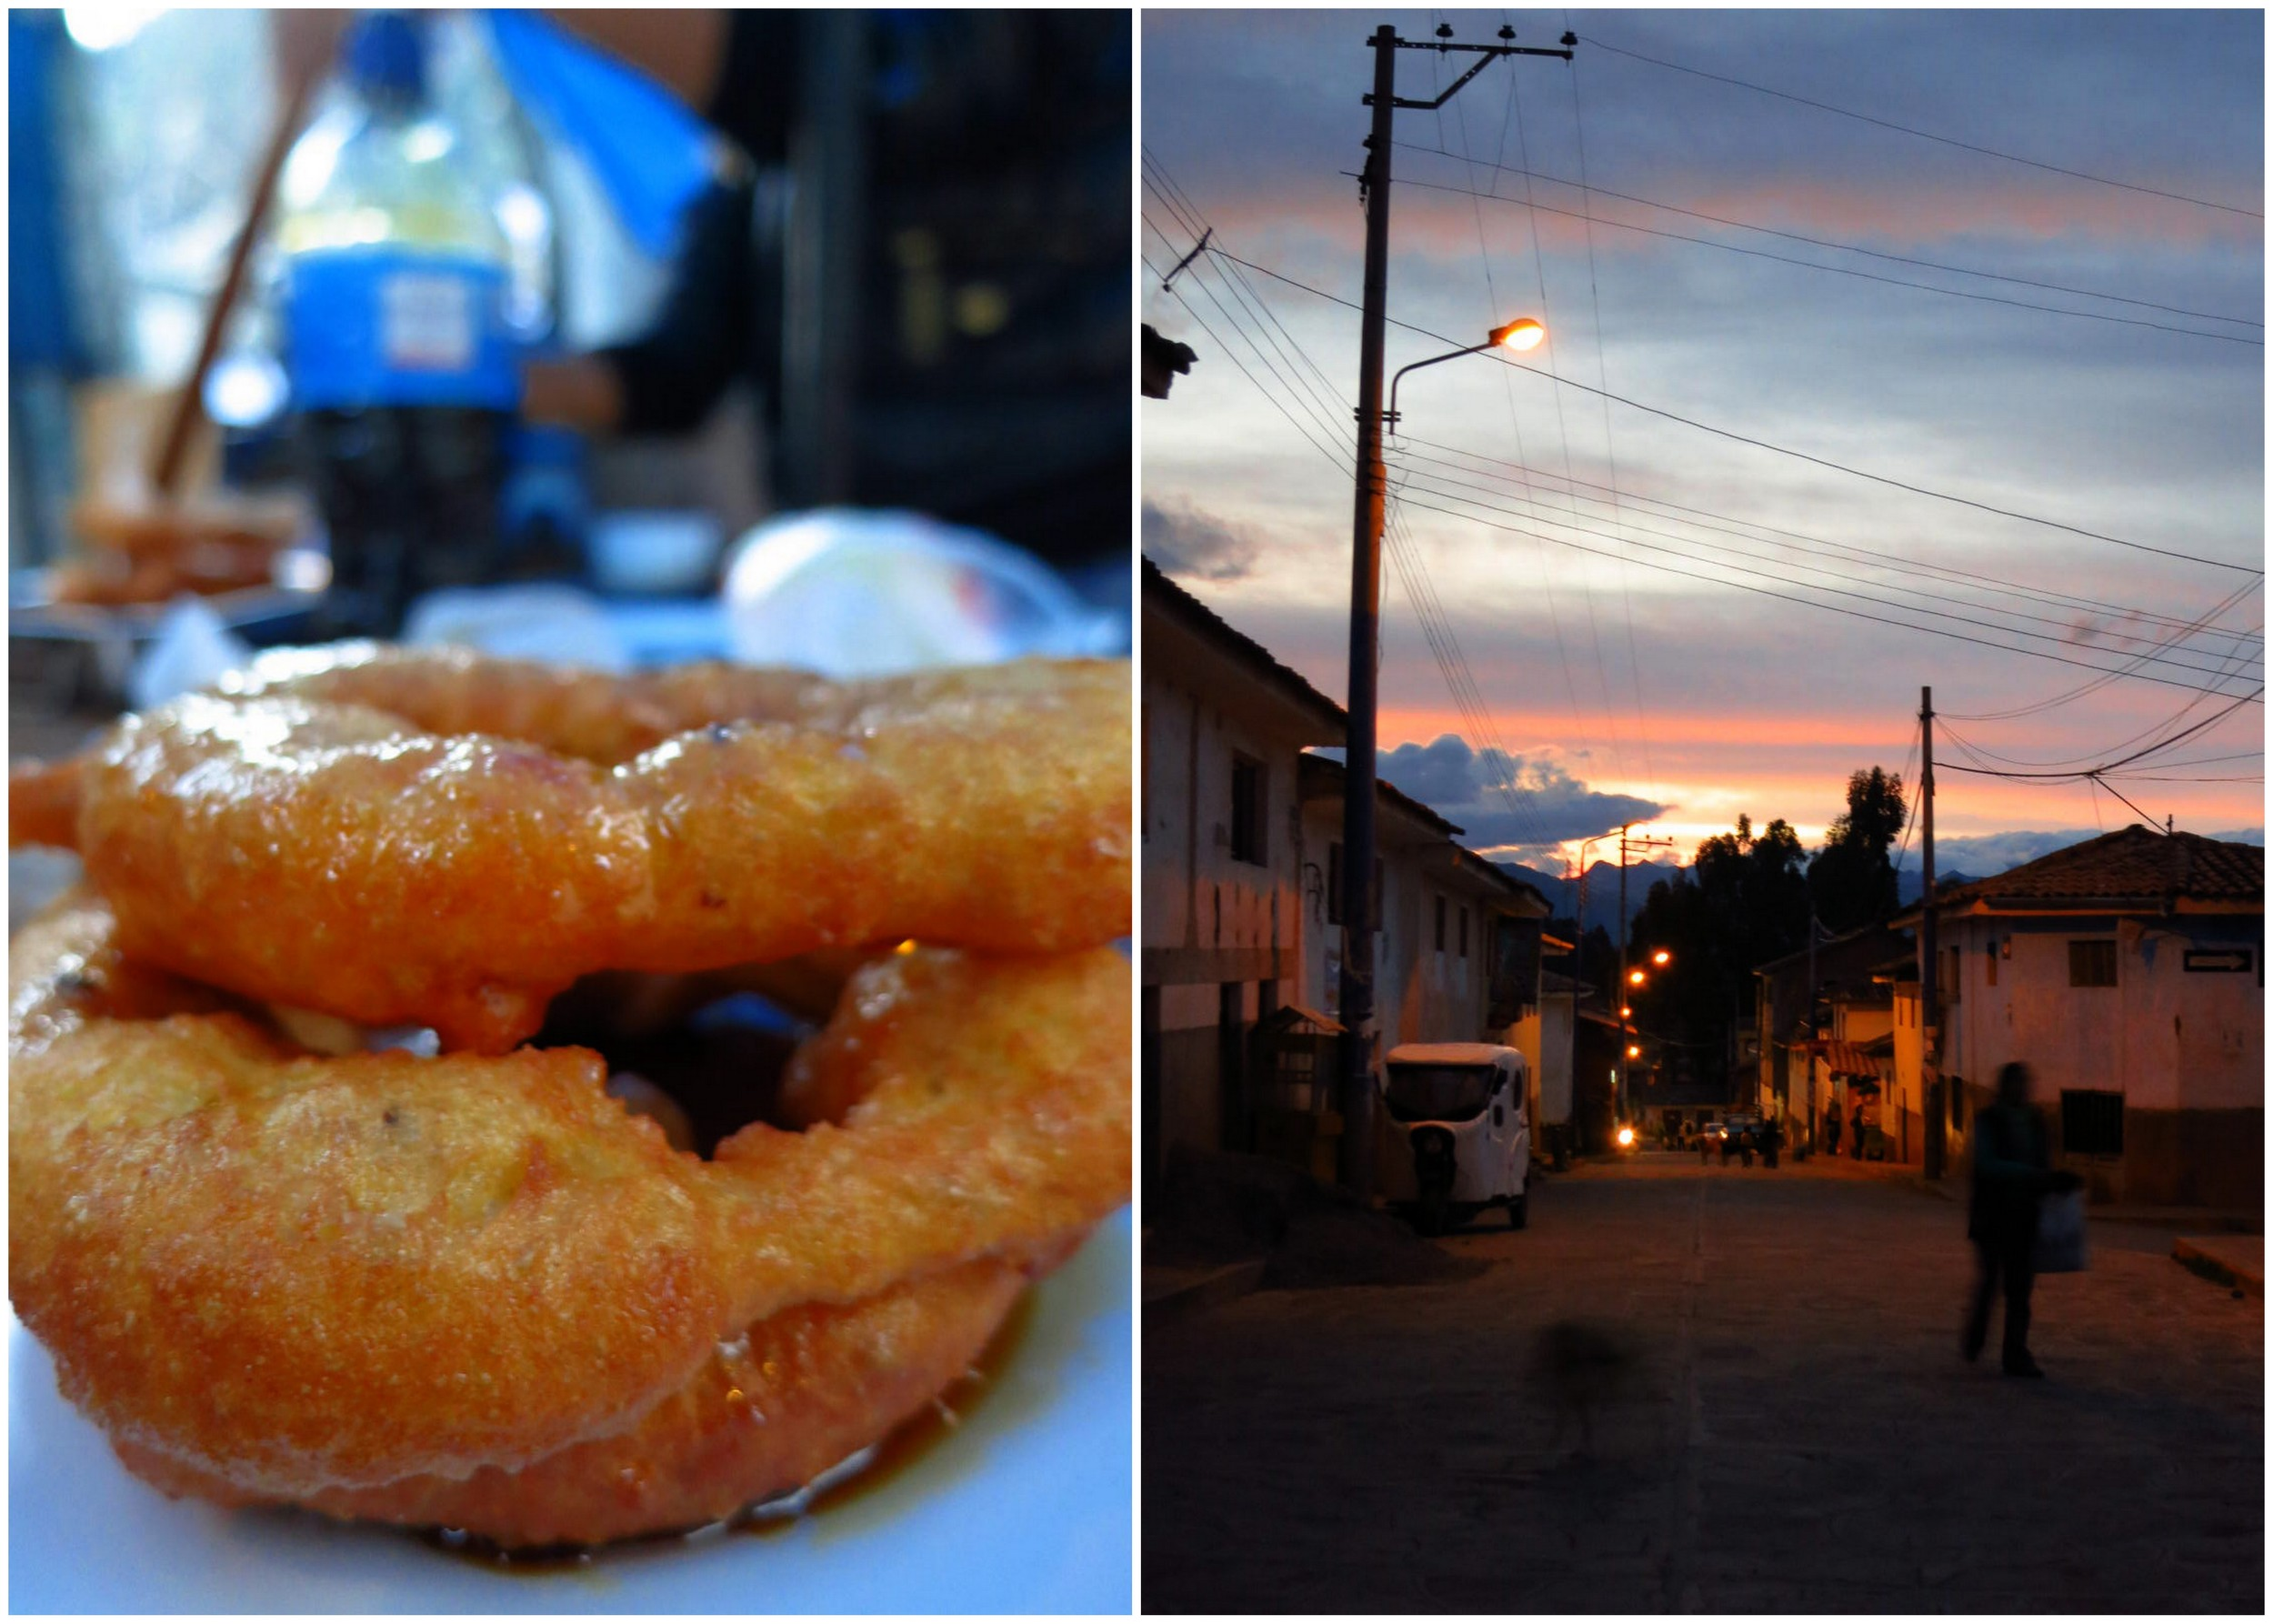 Picarones, aka Peruvian donuts, made of pumpkin and sweet potato